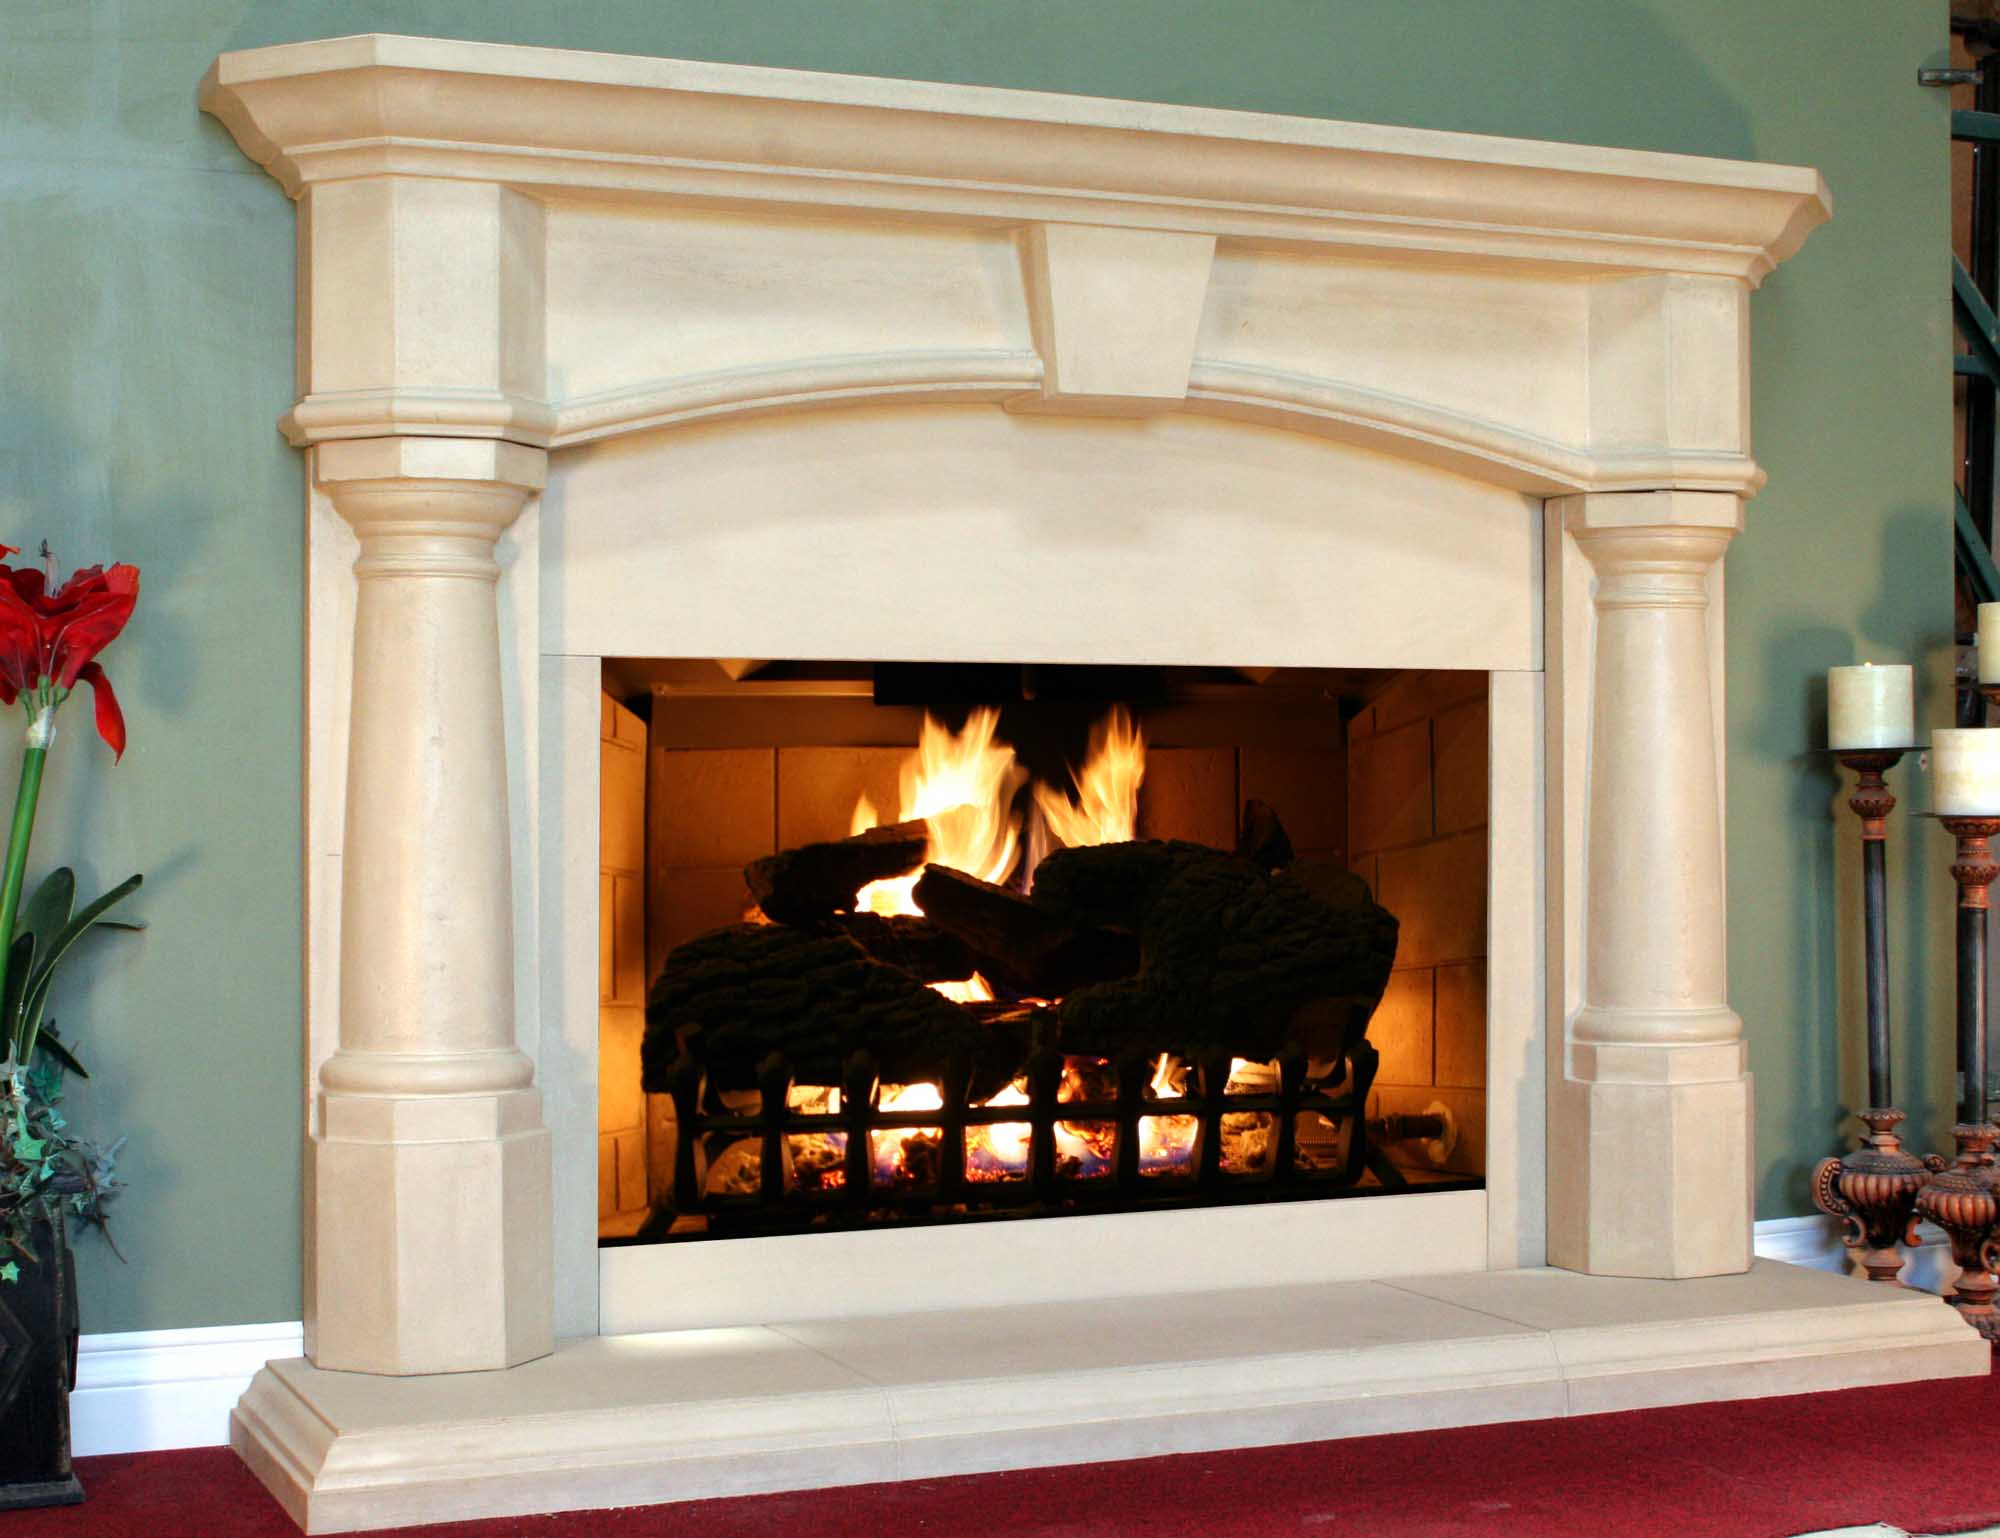 wonderful fireplace mantel design and decoration homesfeed. Black Bedroom Furniture Sets. Home Design Ideas